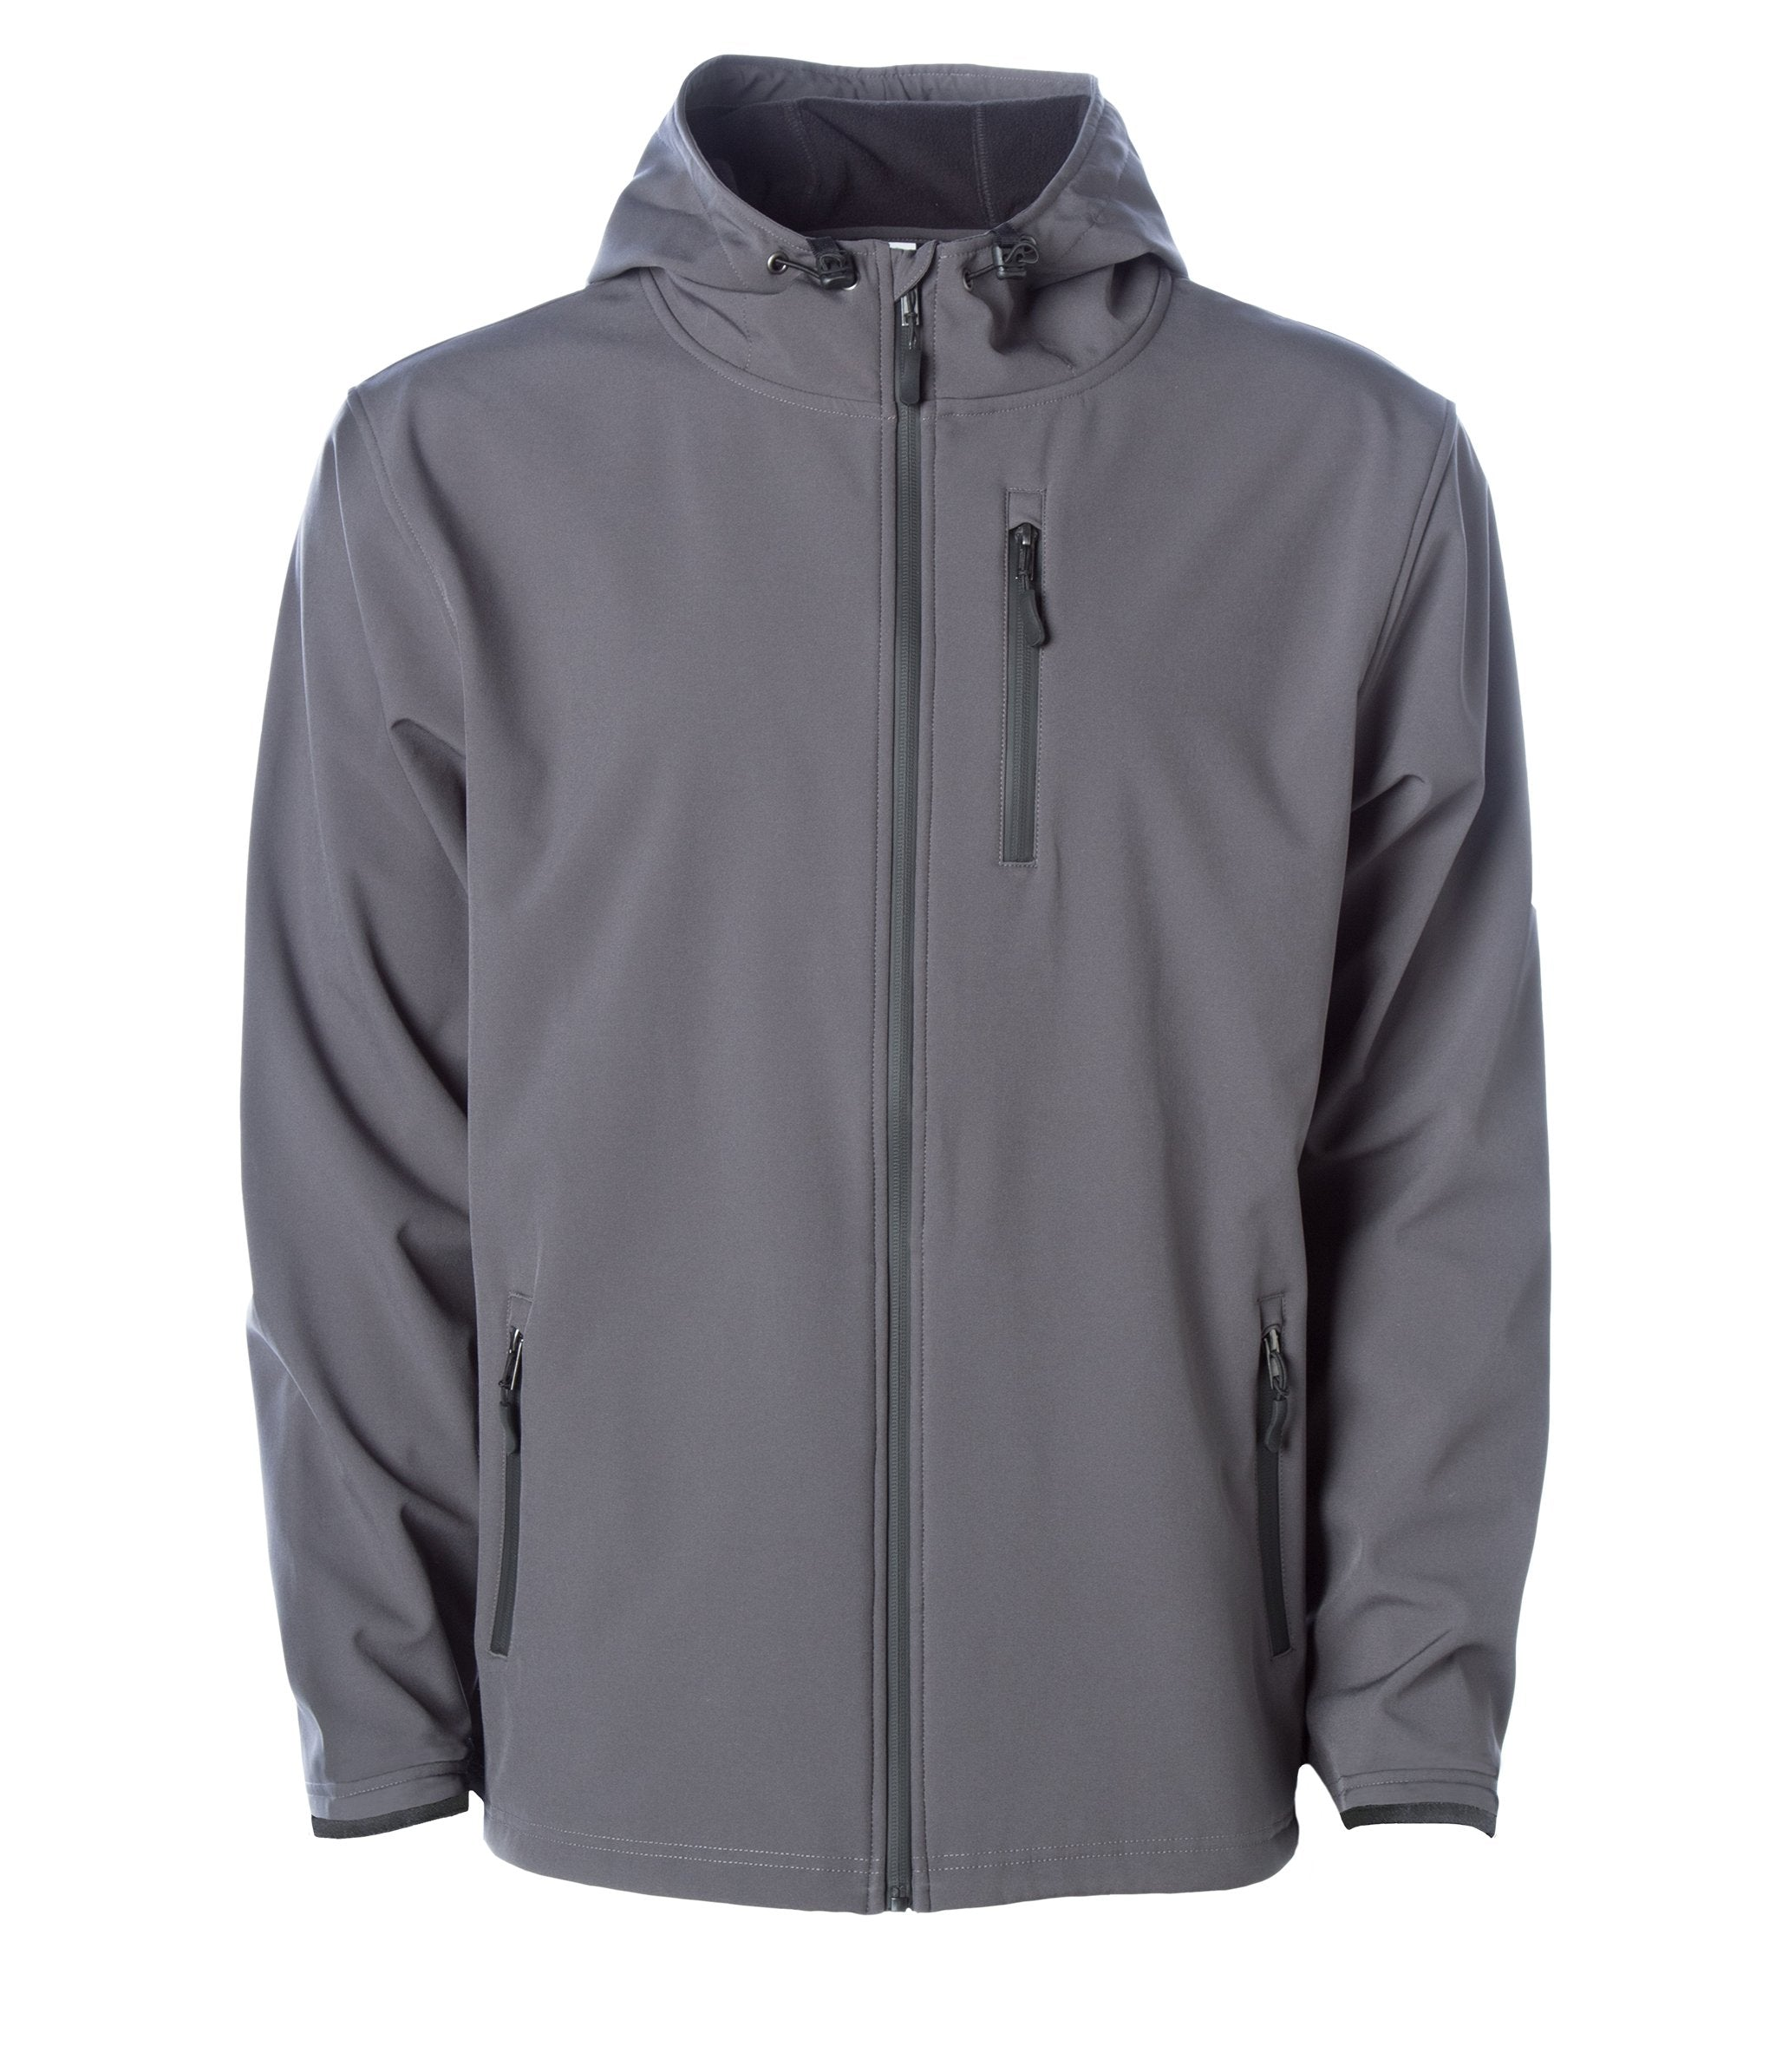 Poly-Tech Water Resistant Soft Shell Jacket in Graphite